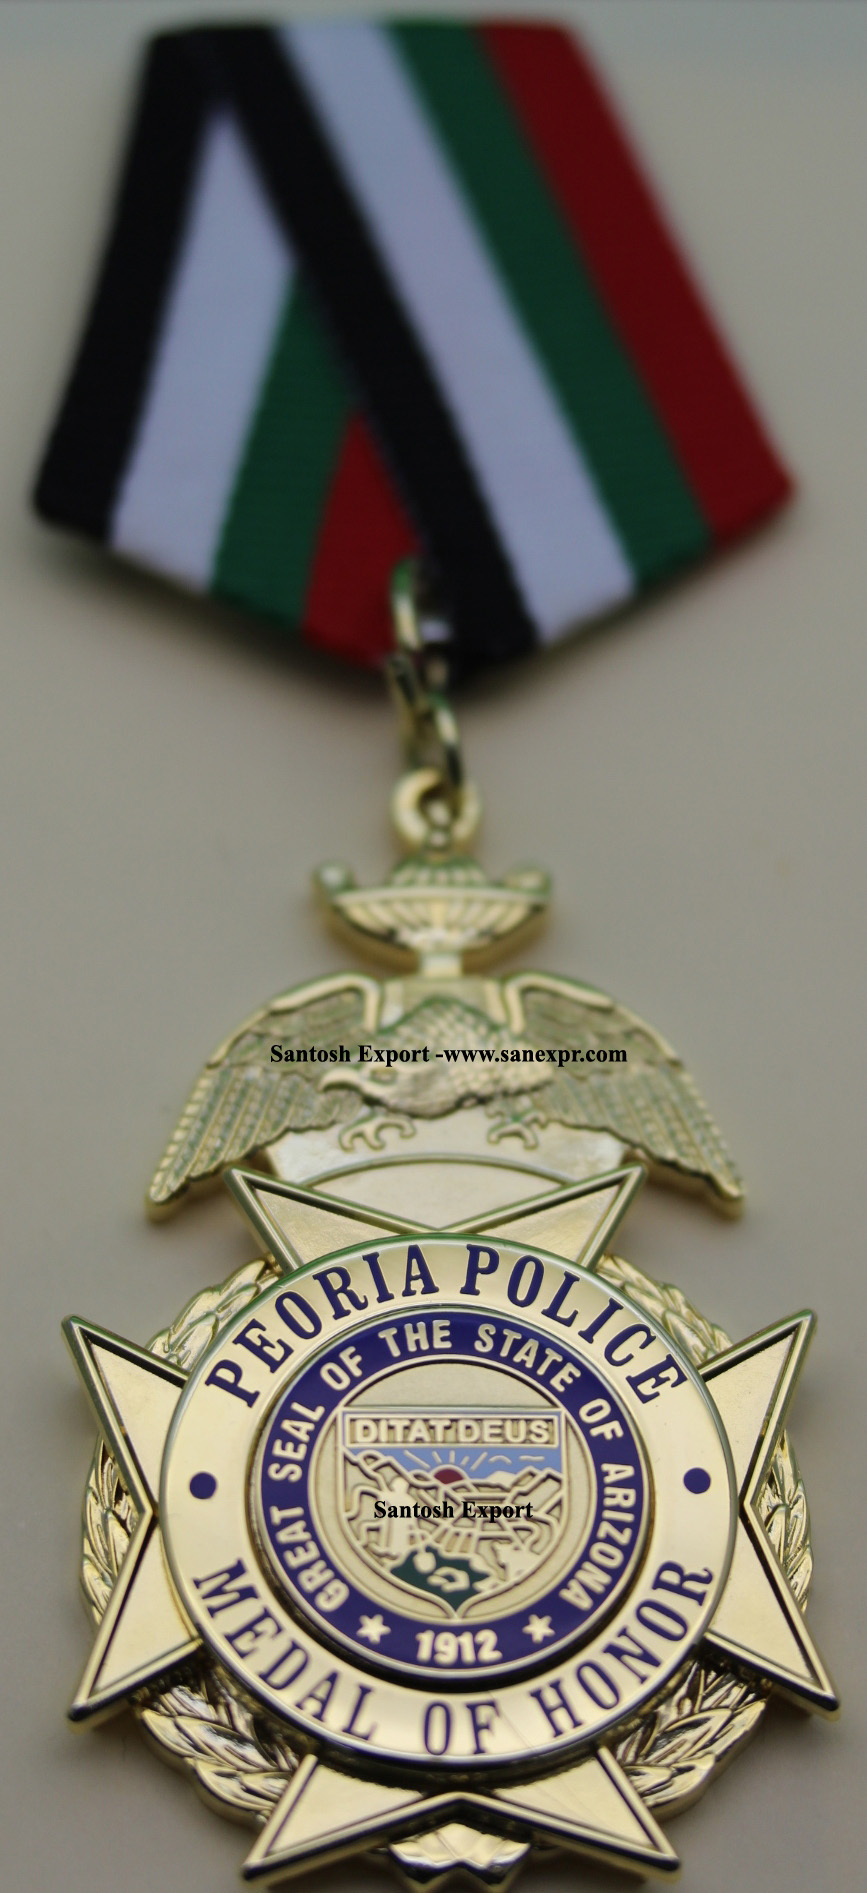 Pocket medal